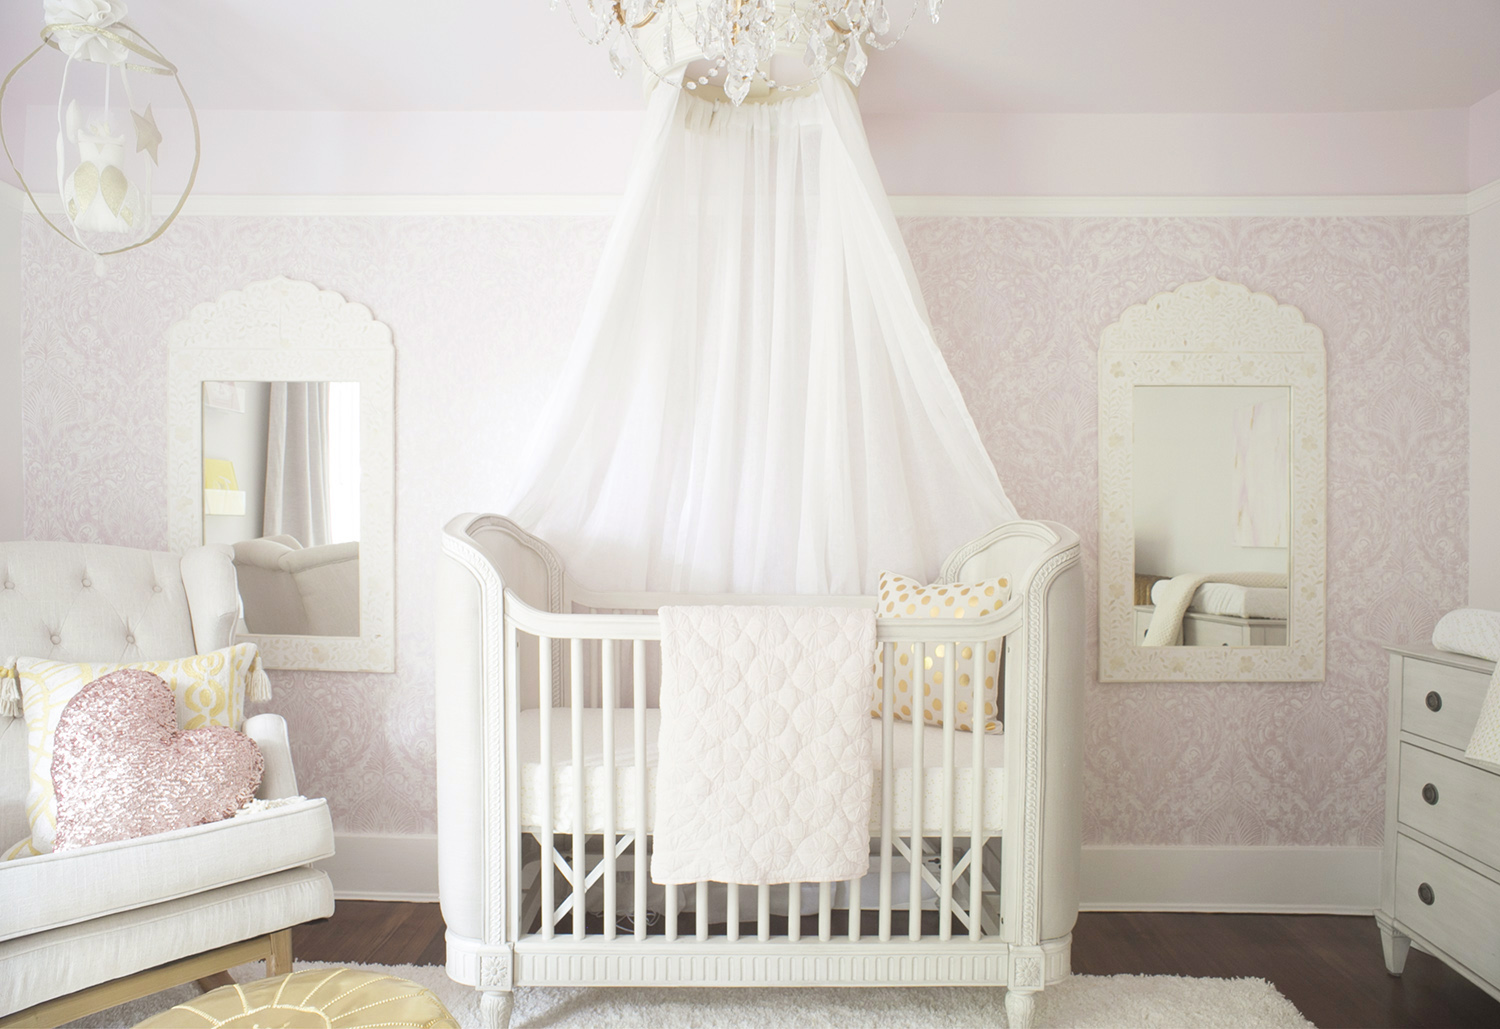 crib view in baby nursery